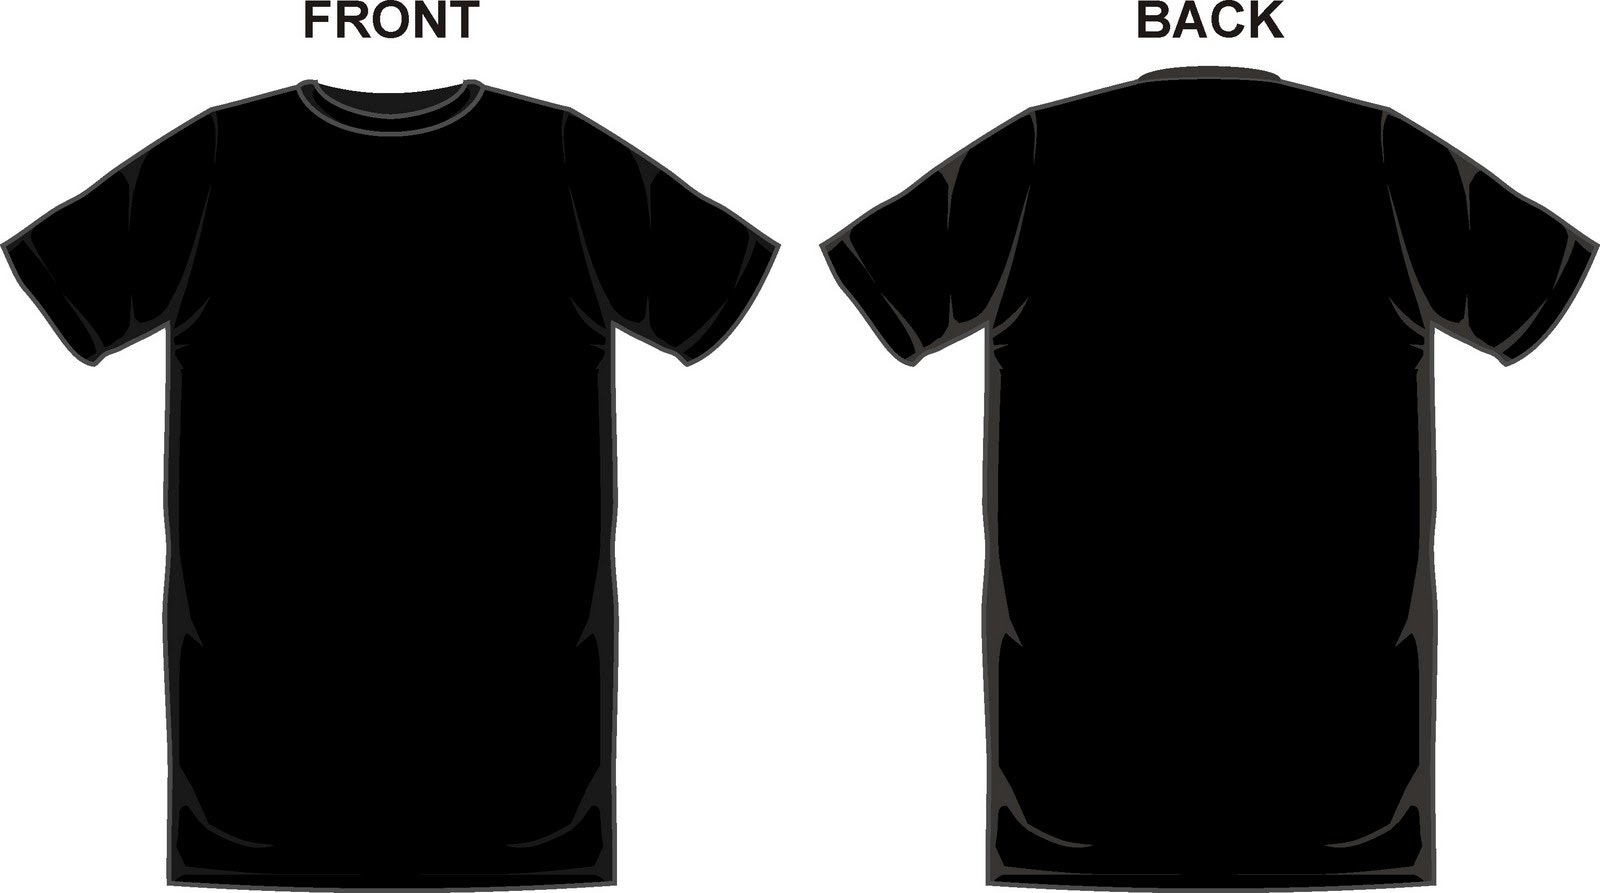 Black t shirt template. Back clipart front back